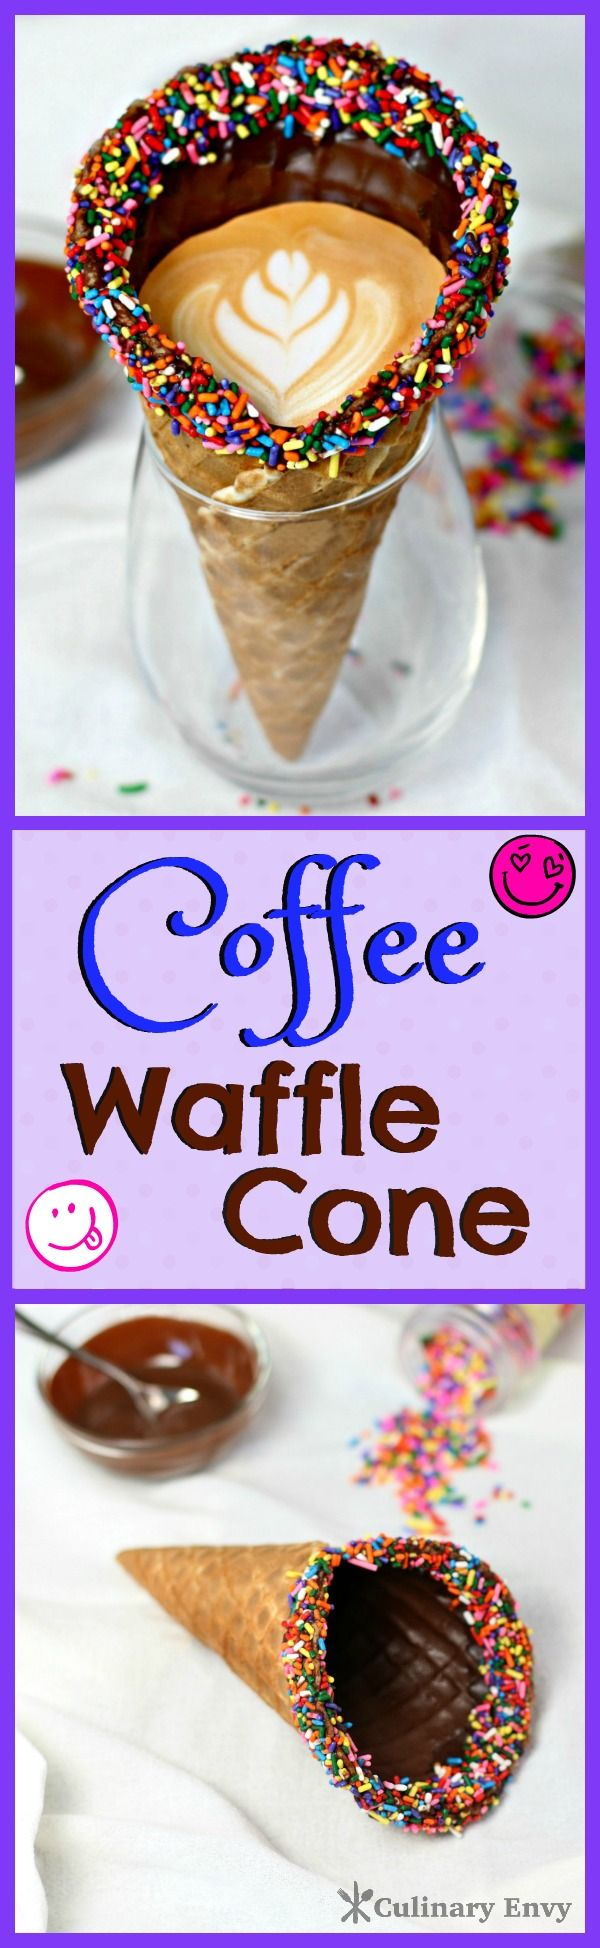 This Coffee Waffle Cone combines an espresso drink and a chocolate covered waffle cone into a fun dessert that the whole family will love!  Fill it with chocolate milk for the kids.  What a fun way to eat and drink dessert at the same time!  Click to read now or pin & save for later!